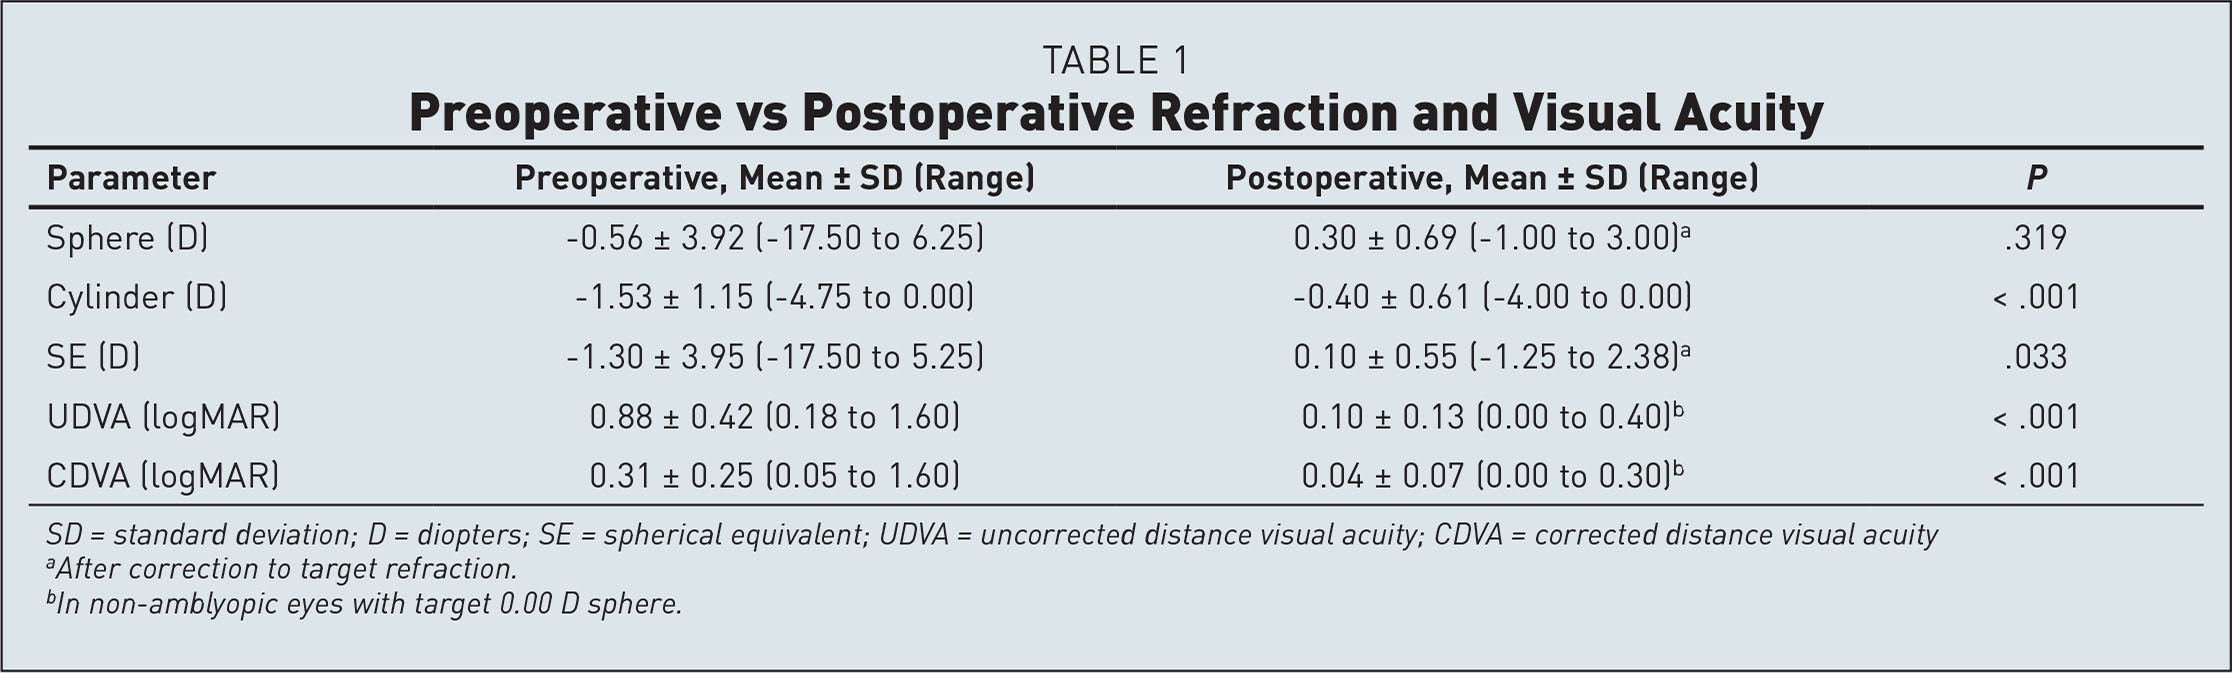 Preoperative vs Postoperative Refraction and Visual Acuity